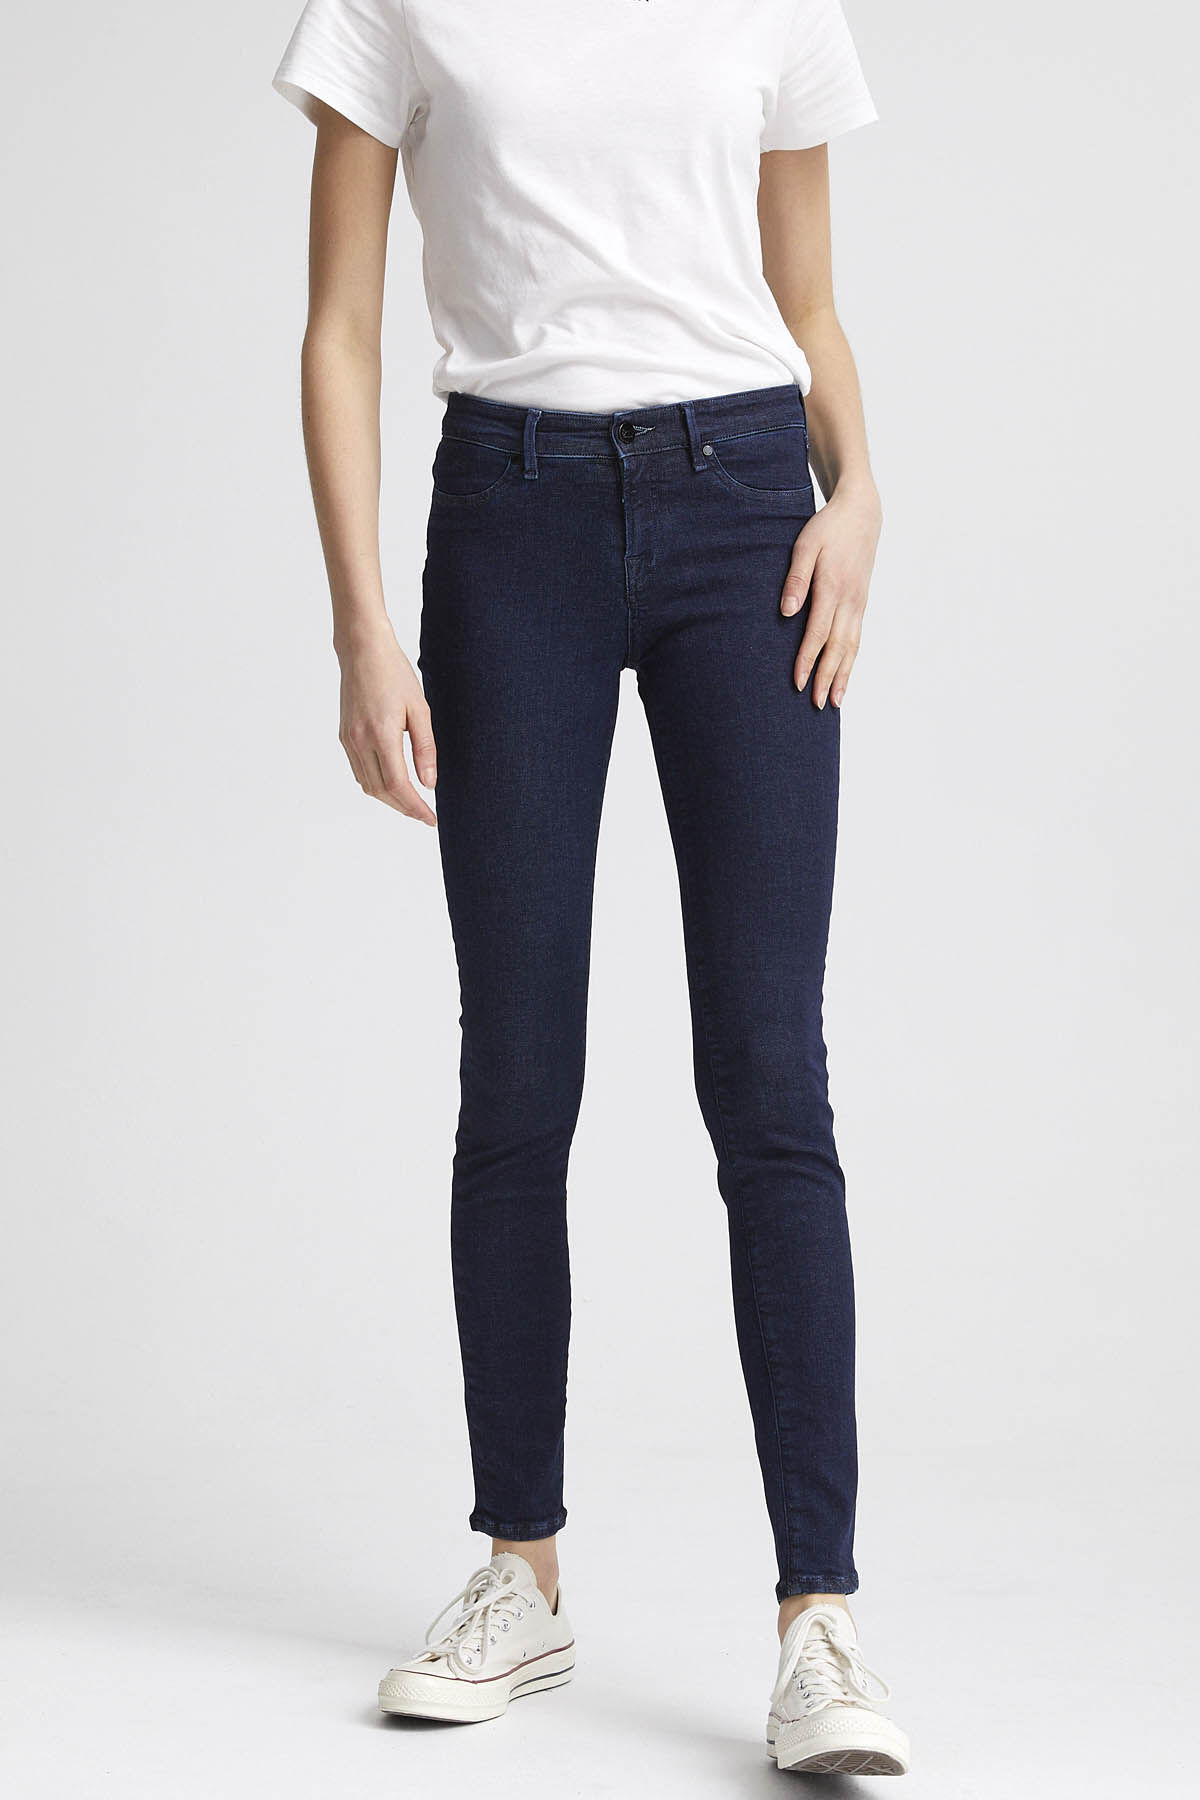 SPRAY Indigo Dipped Denim - Mid-rise Tight Fit